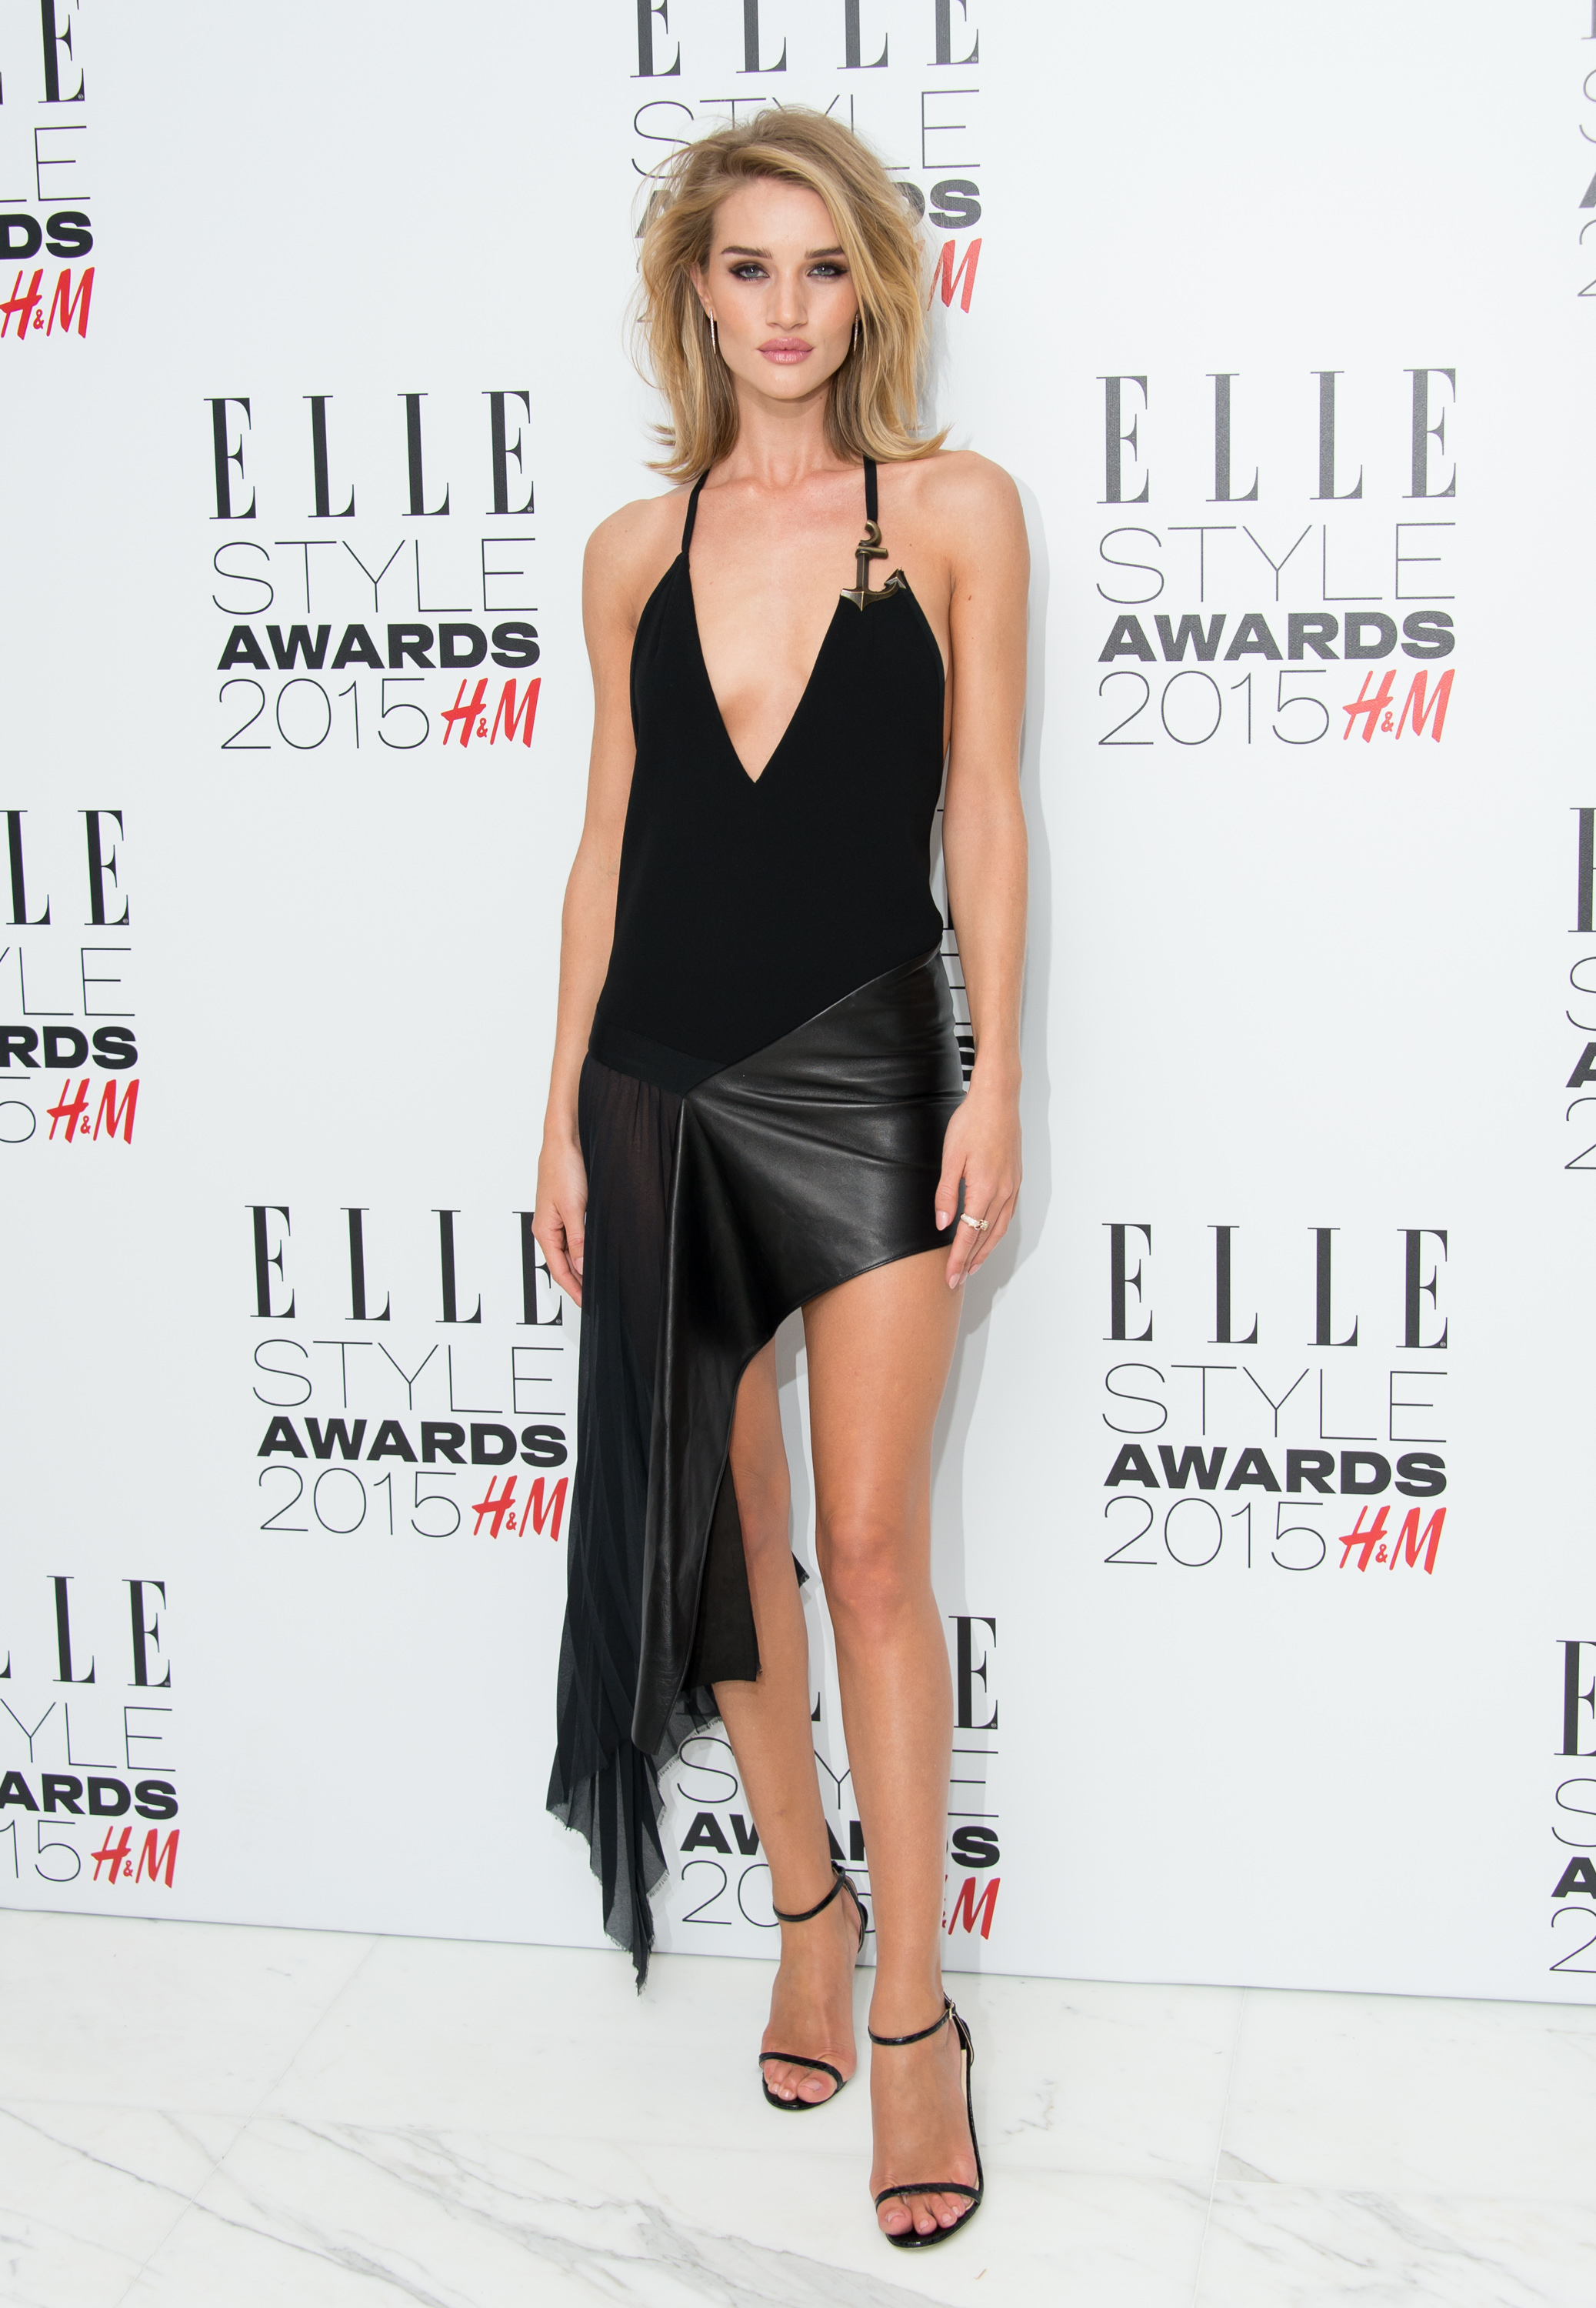 LONDON, ENGLAND - FEBRUARY 24: Rosie Huntington-Whiteley attends the Elle Style Awards 2015 at Sky Garden @ The Walkie Talkie Tower on February 24, 2015 in London, England. (Photo by Ian Gavan/Getty Images)